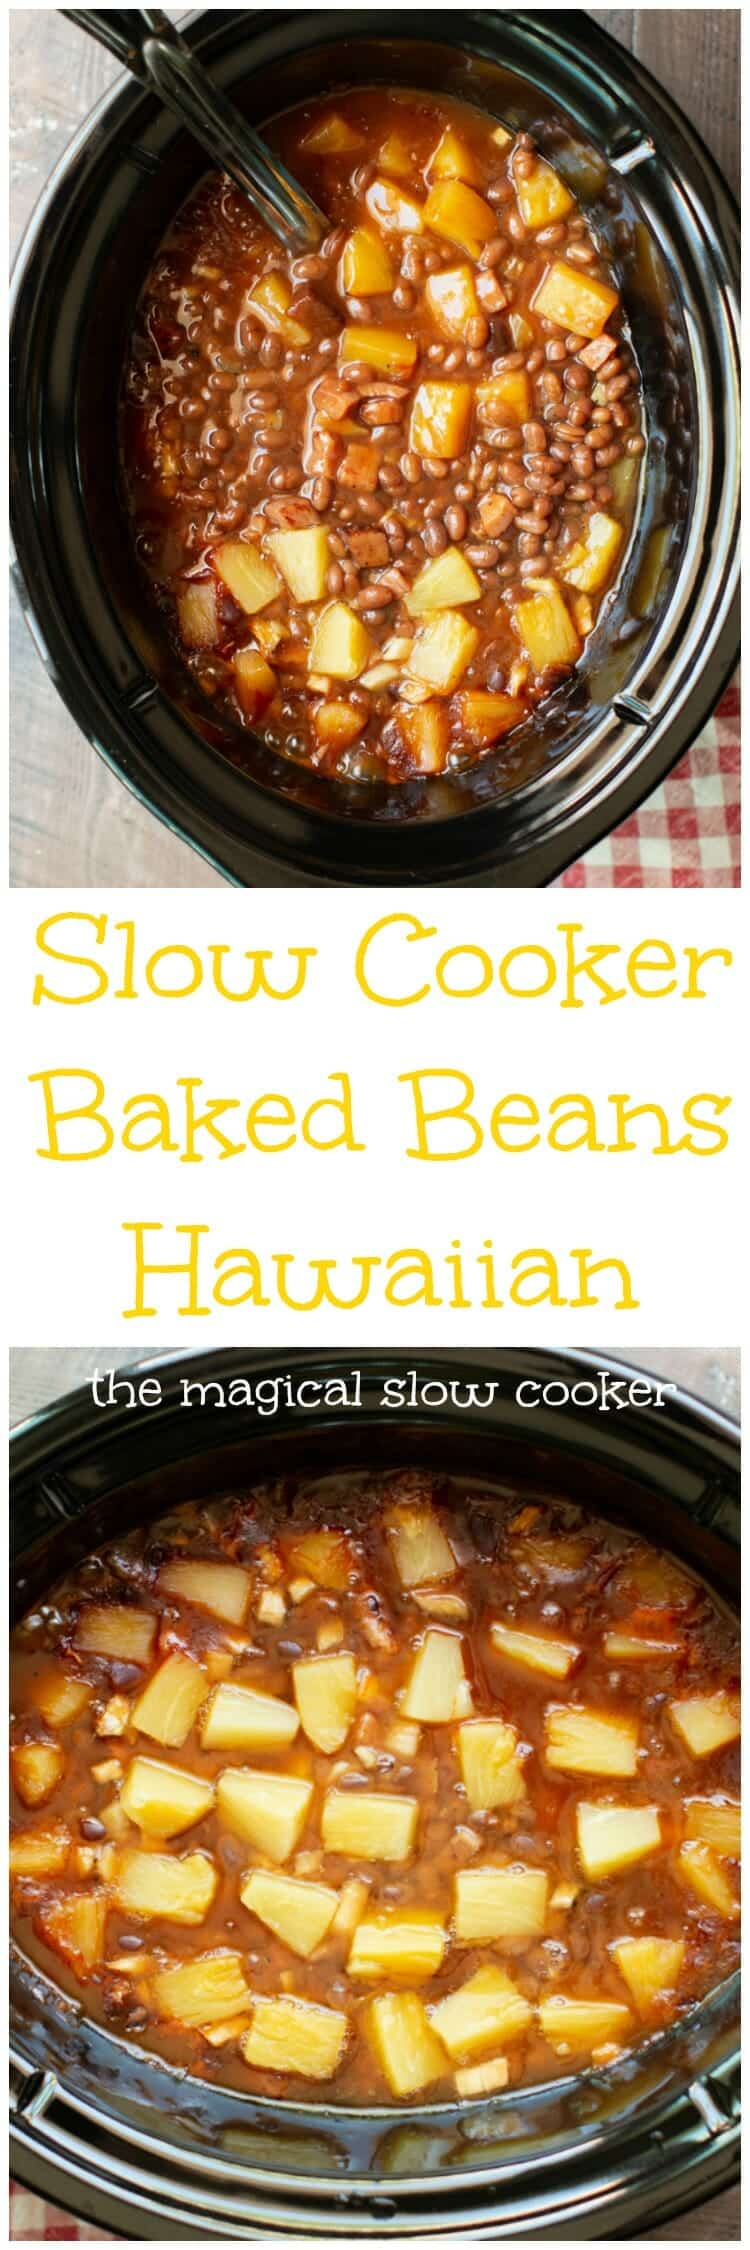 Slow Cooker Baked Beans Hawaiian